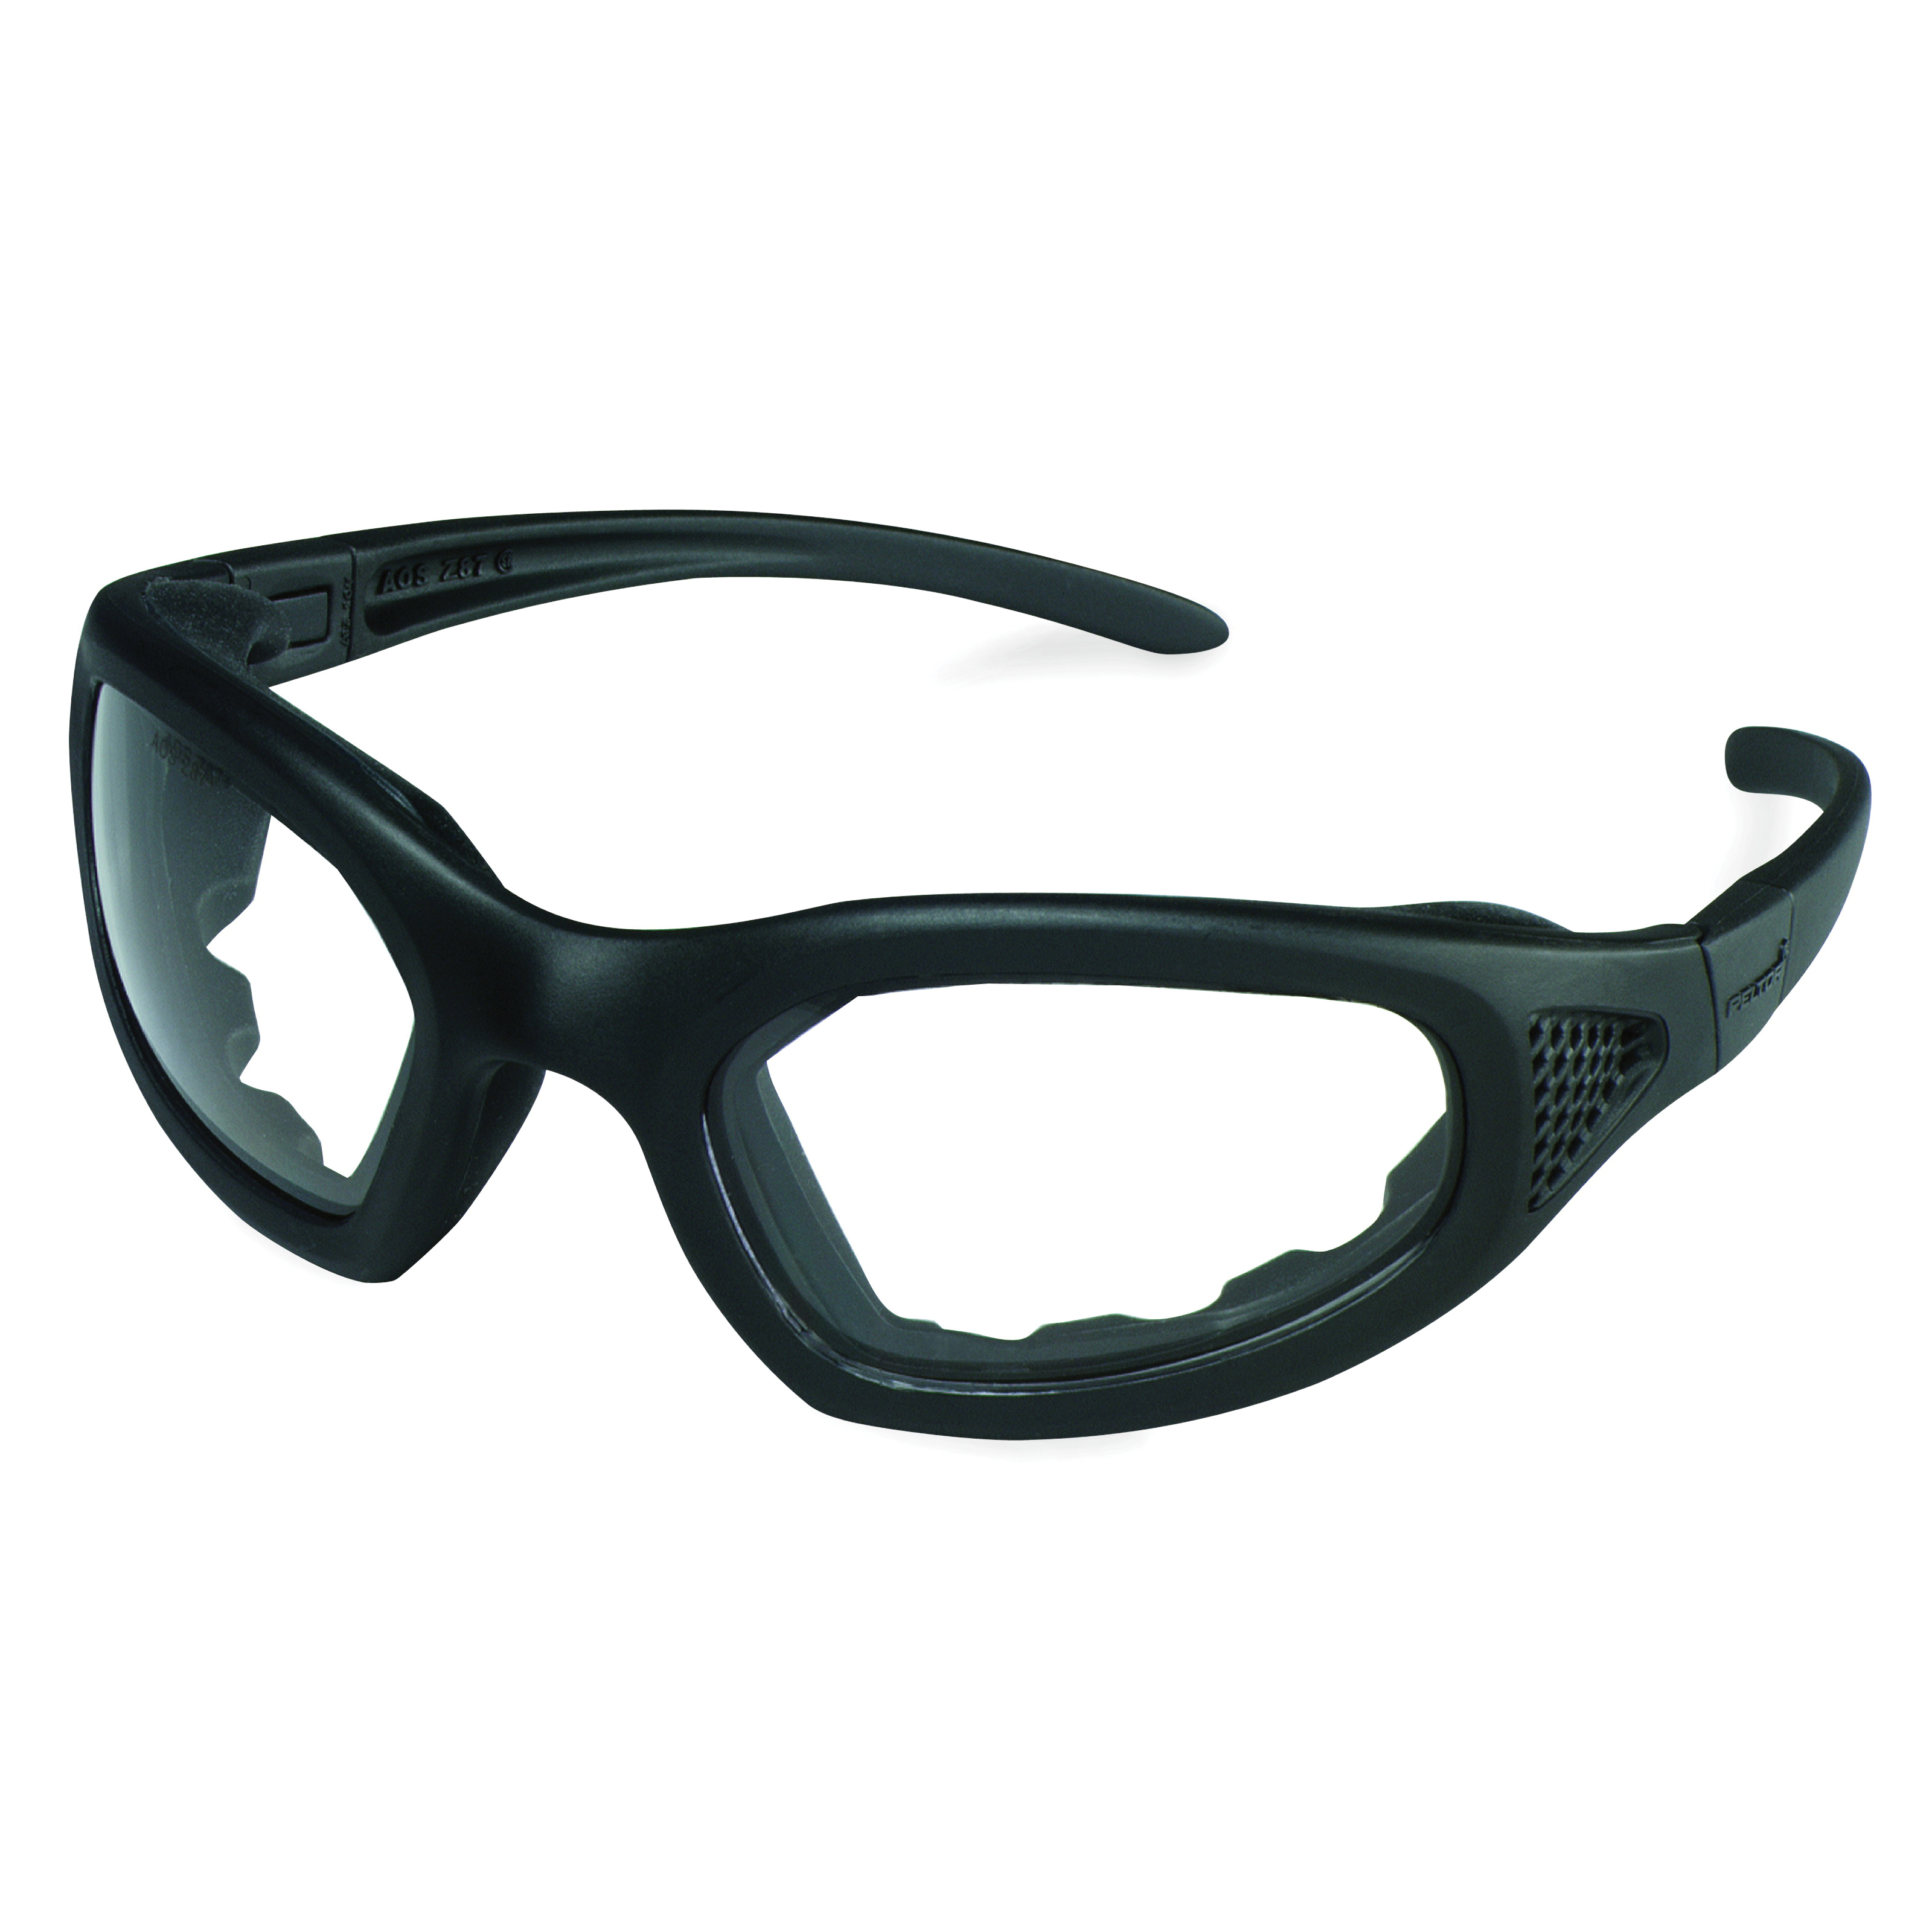 3M™ Maxim™ 2x2 078371-62167 40687-00000-10 Indirect Venting Premium Safety Goggles With Black Frame and Elastic Strap, Anti-Fog Gray Polycarbonate Lens, 99.9% % UV Protection, Elastic Strap, ANSI Z87.1-2015